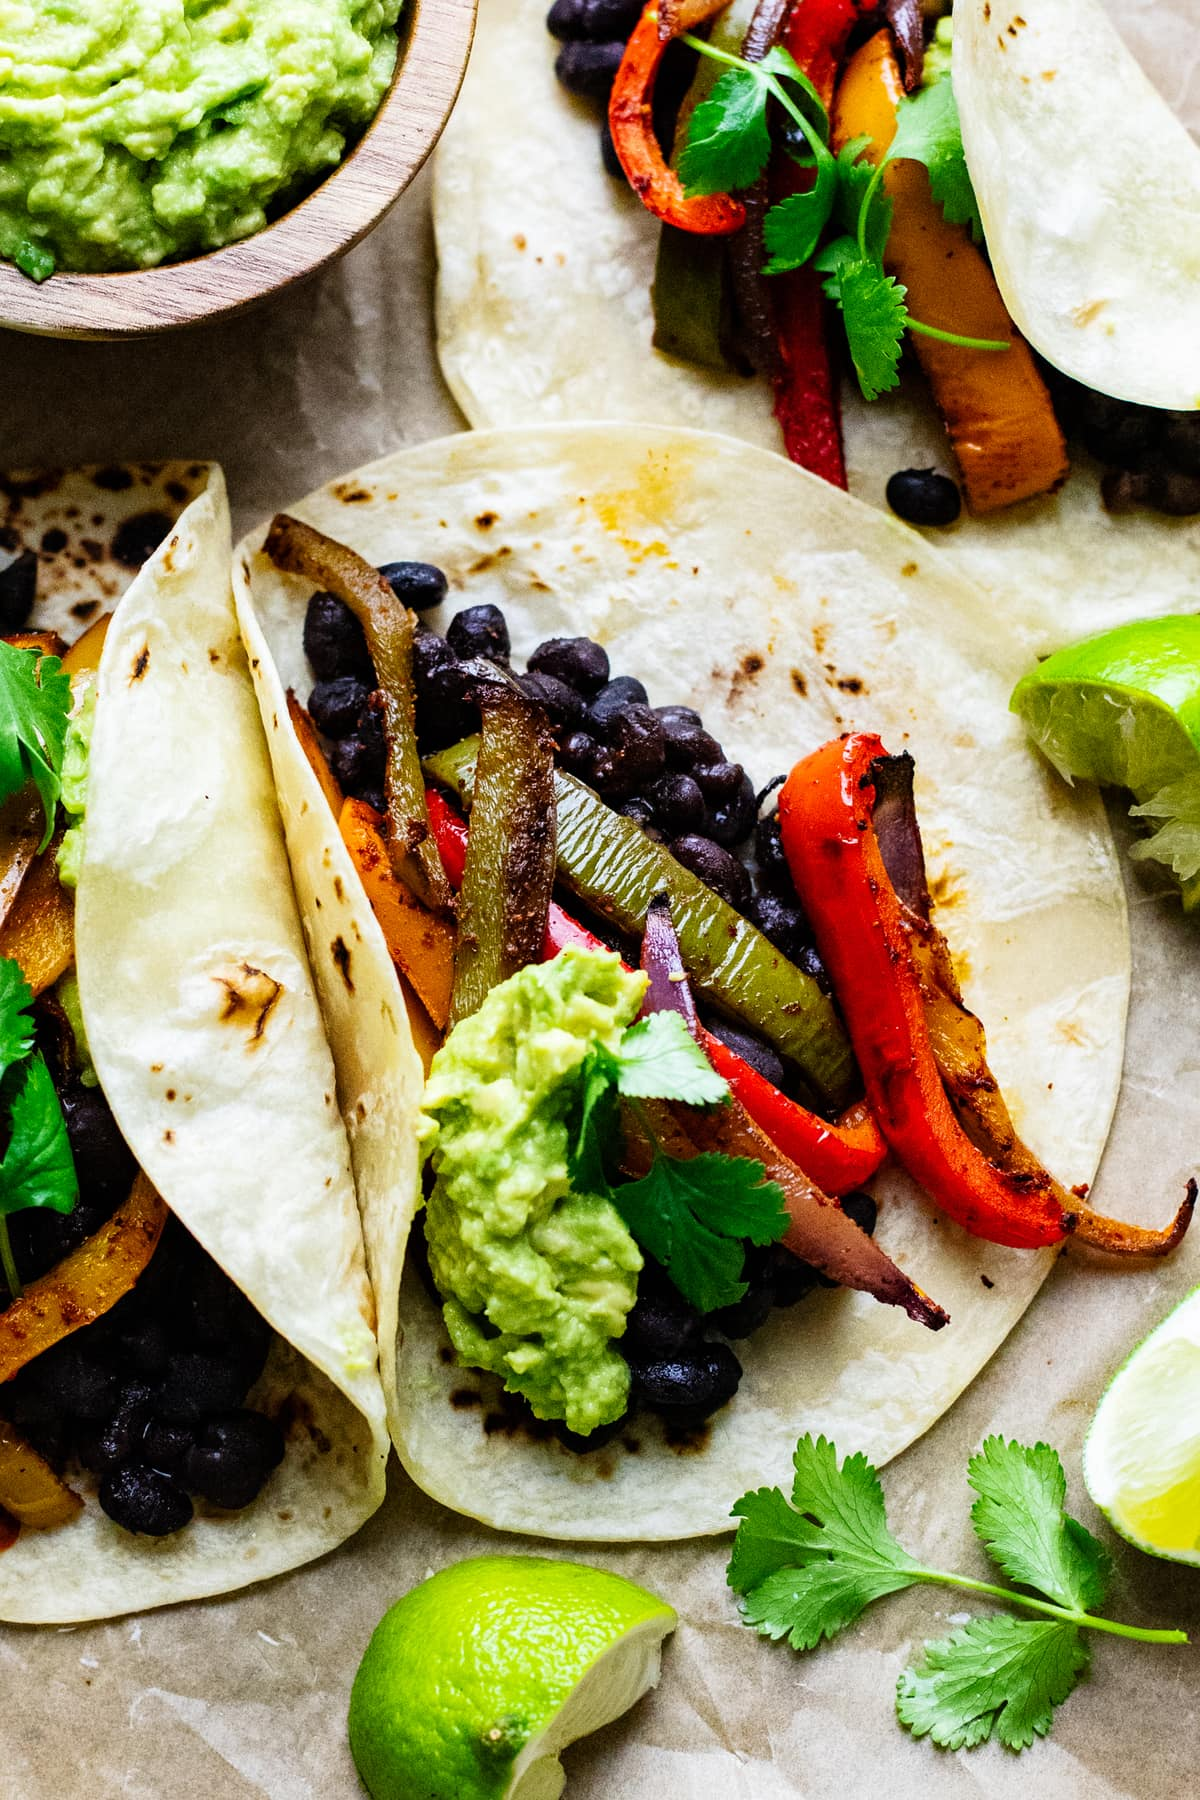 vegetarian fajitas arranged on parchment paper with lime slices and guacamole arranged around them.